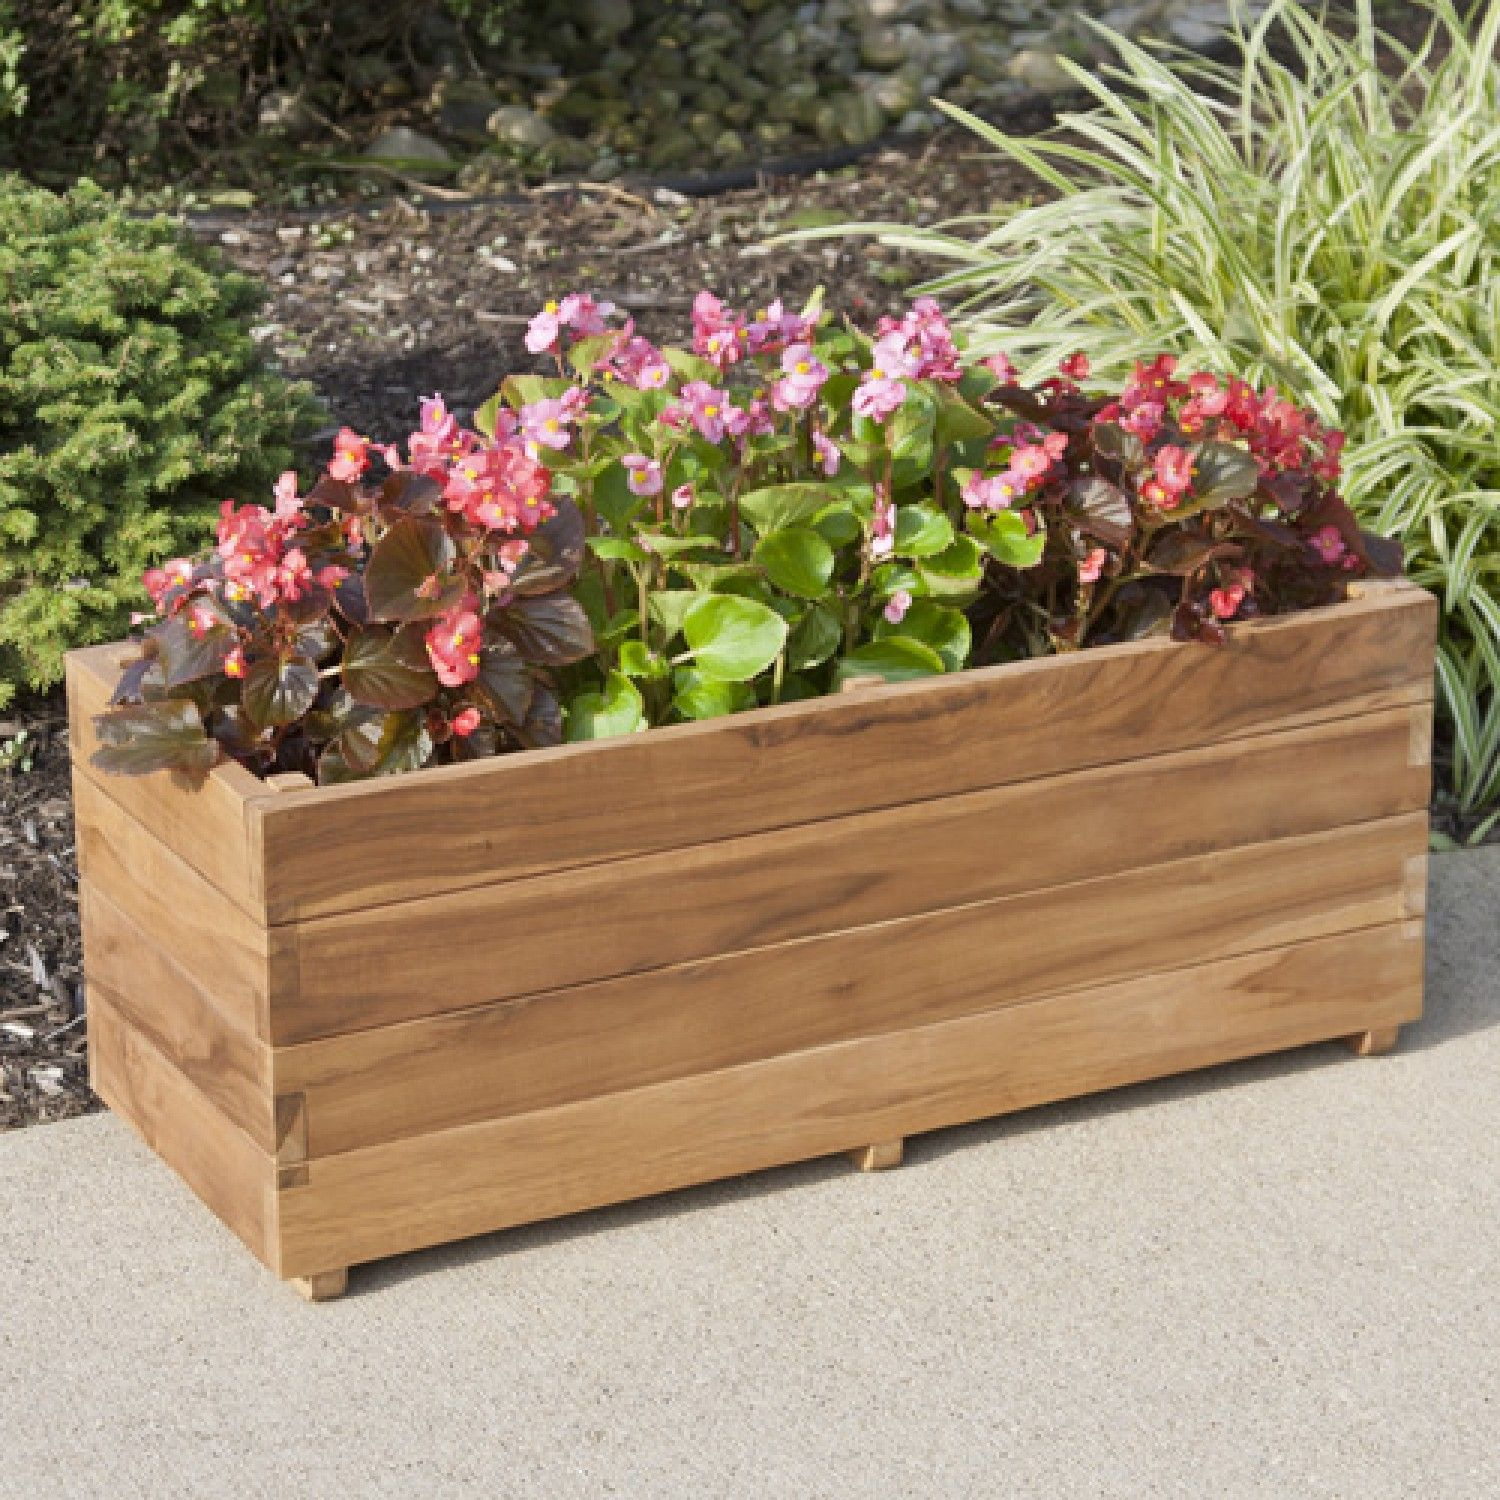 Teak Rectangular Planter Planters And Windowboxes Outdoor Outdoor Wooden Planters Rectangular Planters Wooden Planters